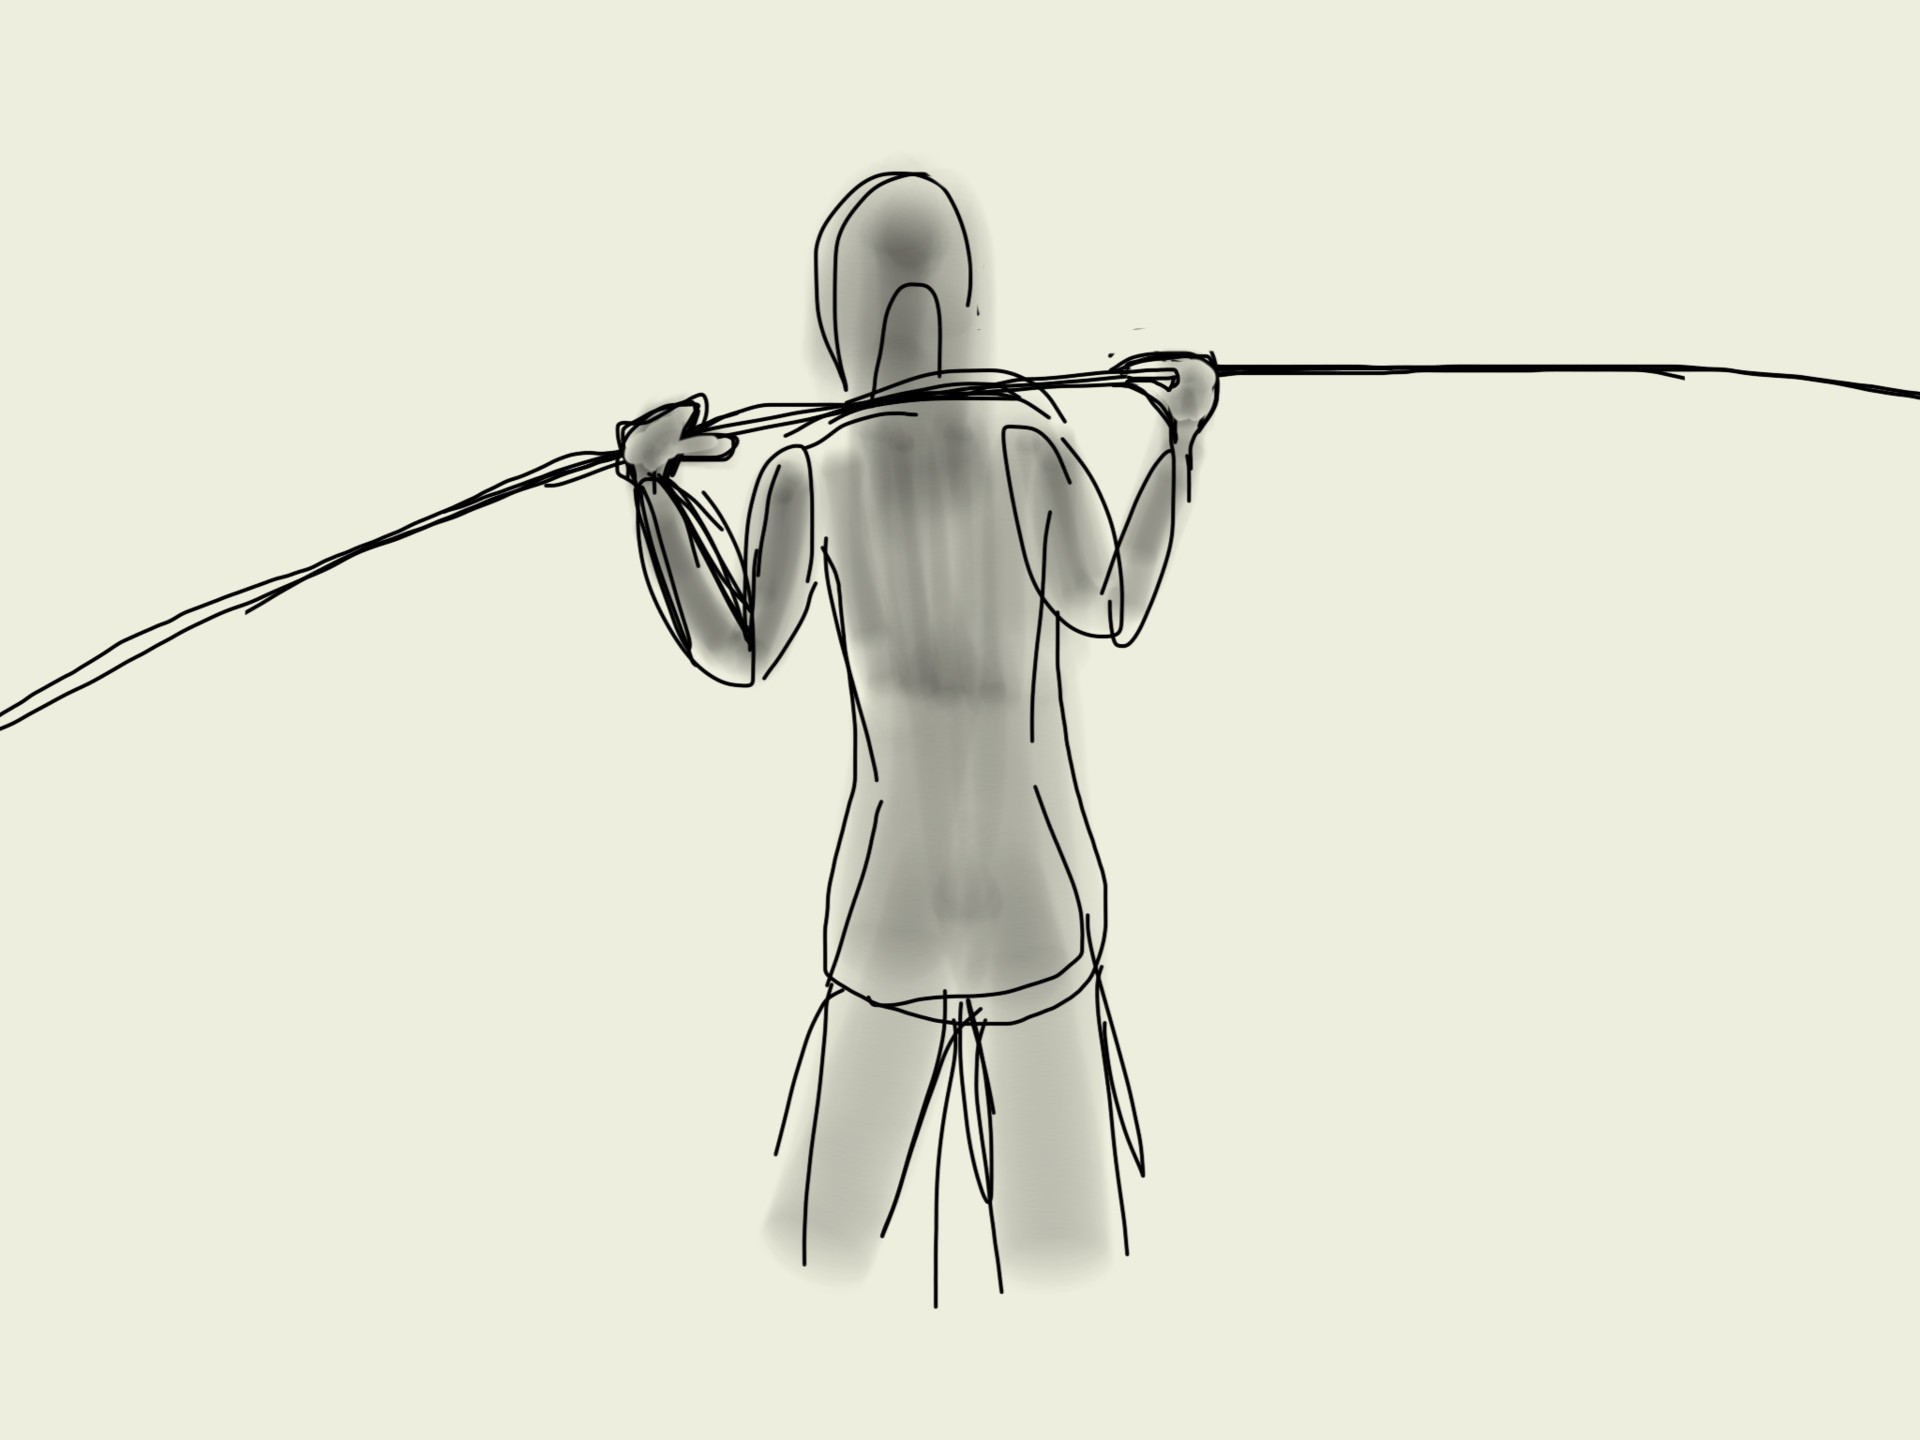 Rough pose study of the vaulter